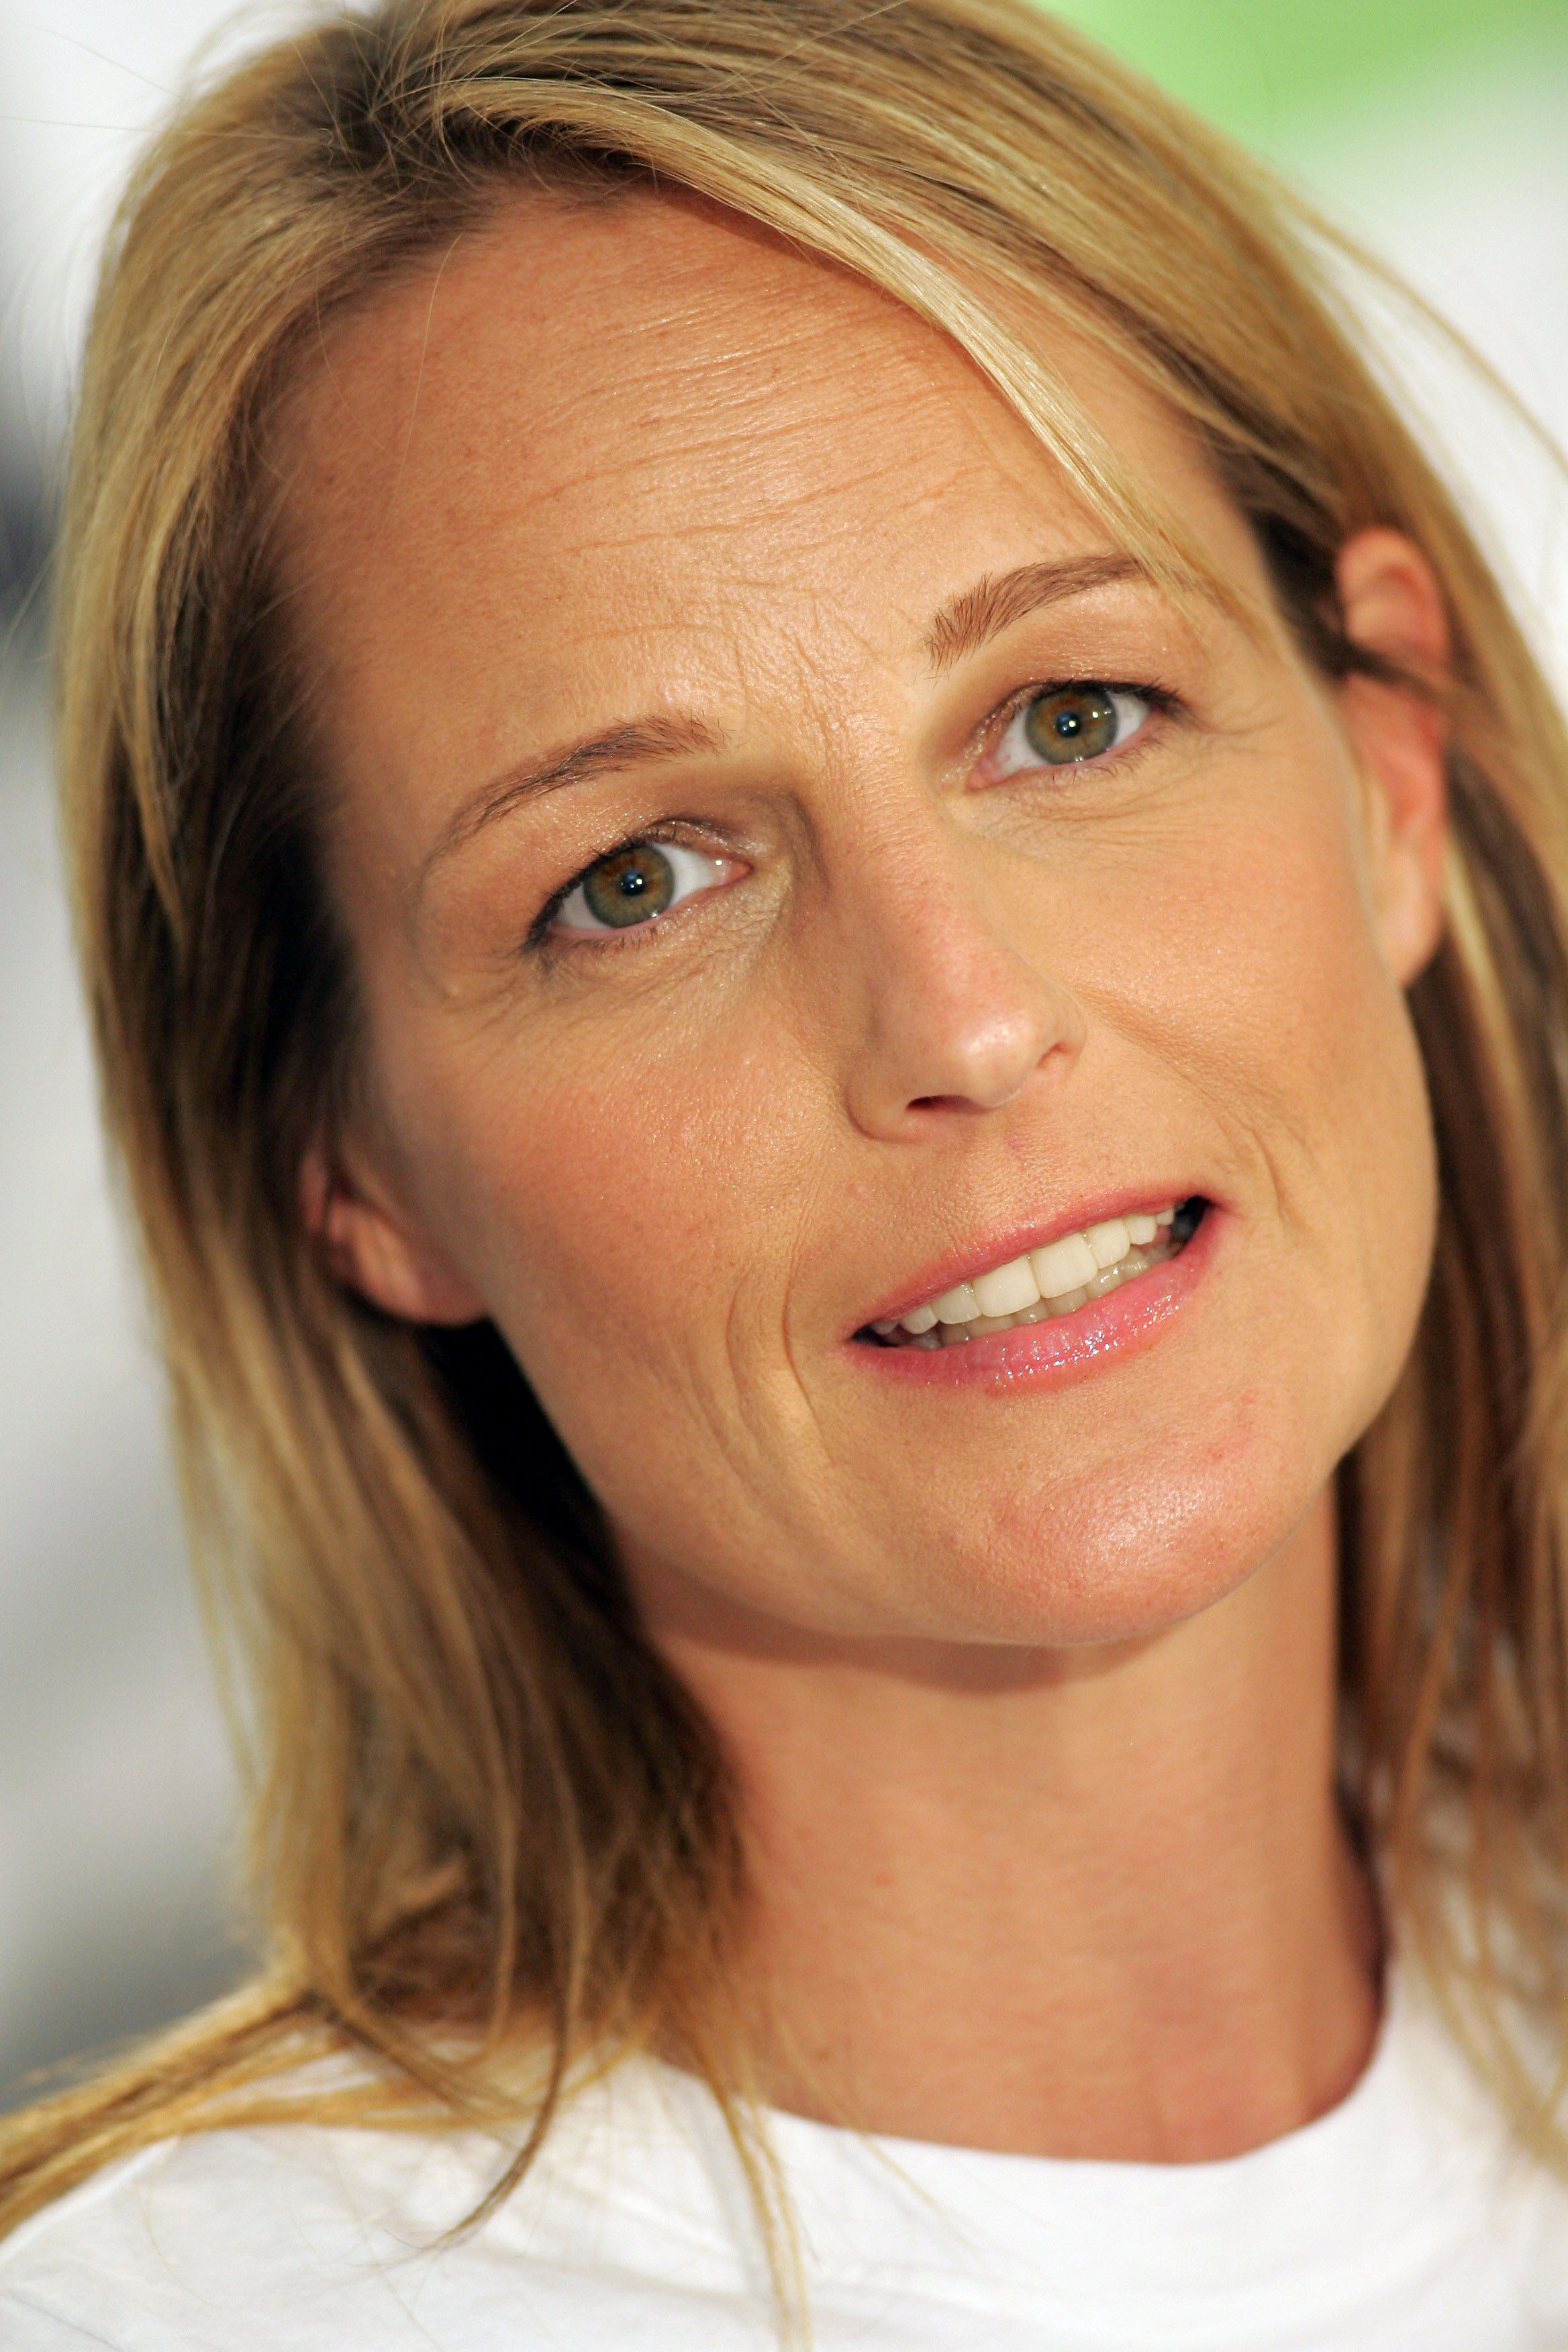 helen hunt fotohelen hunt is a career officer in manchester, helen hunt young, helen hunt instagram, helen hunt jackson, helen hunt 2017, helen hunt jodie foster, helen hunt imdb, helen hunt friends, helen hunt daughter, helen hunt twister, helen hunt jackson a century of dishonor, helen hunt vk, helen hunt photo, helen hunt elementary school temecula, helen hunt and bill paxton movies, helen hunt movie, helen hunt zimbio, helen hunt falls, helen hunt foto, helen hunt tv show